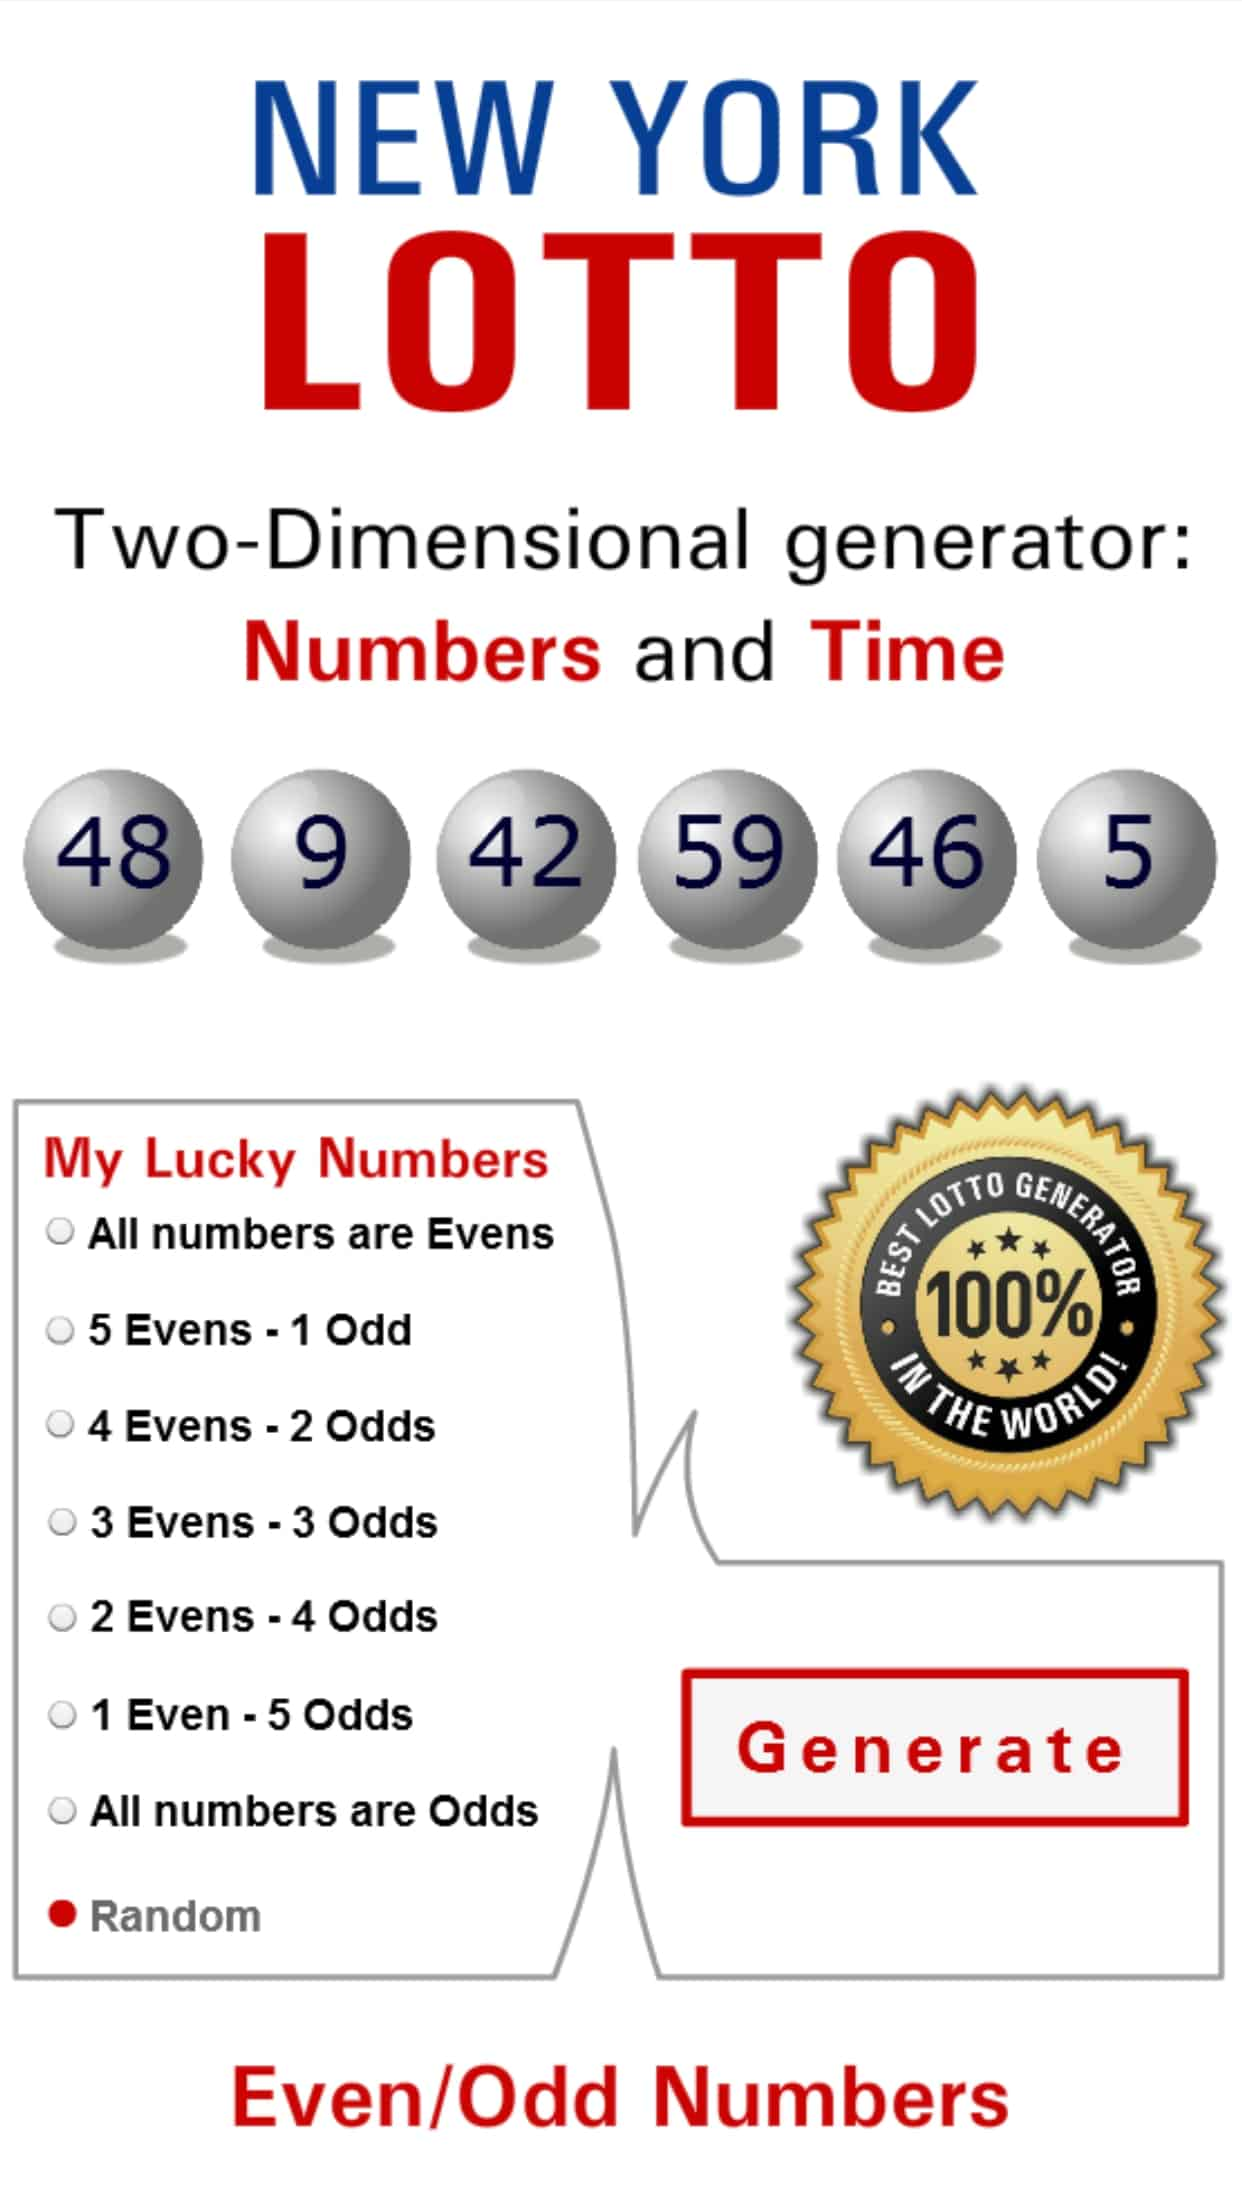 New York Lottery (NY Lottery) – Winning Numbers, Results & Tips for NY lottery